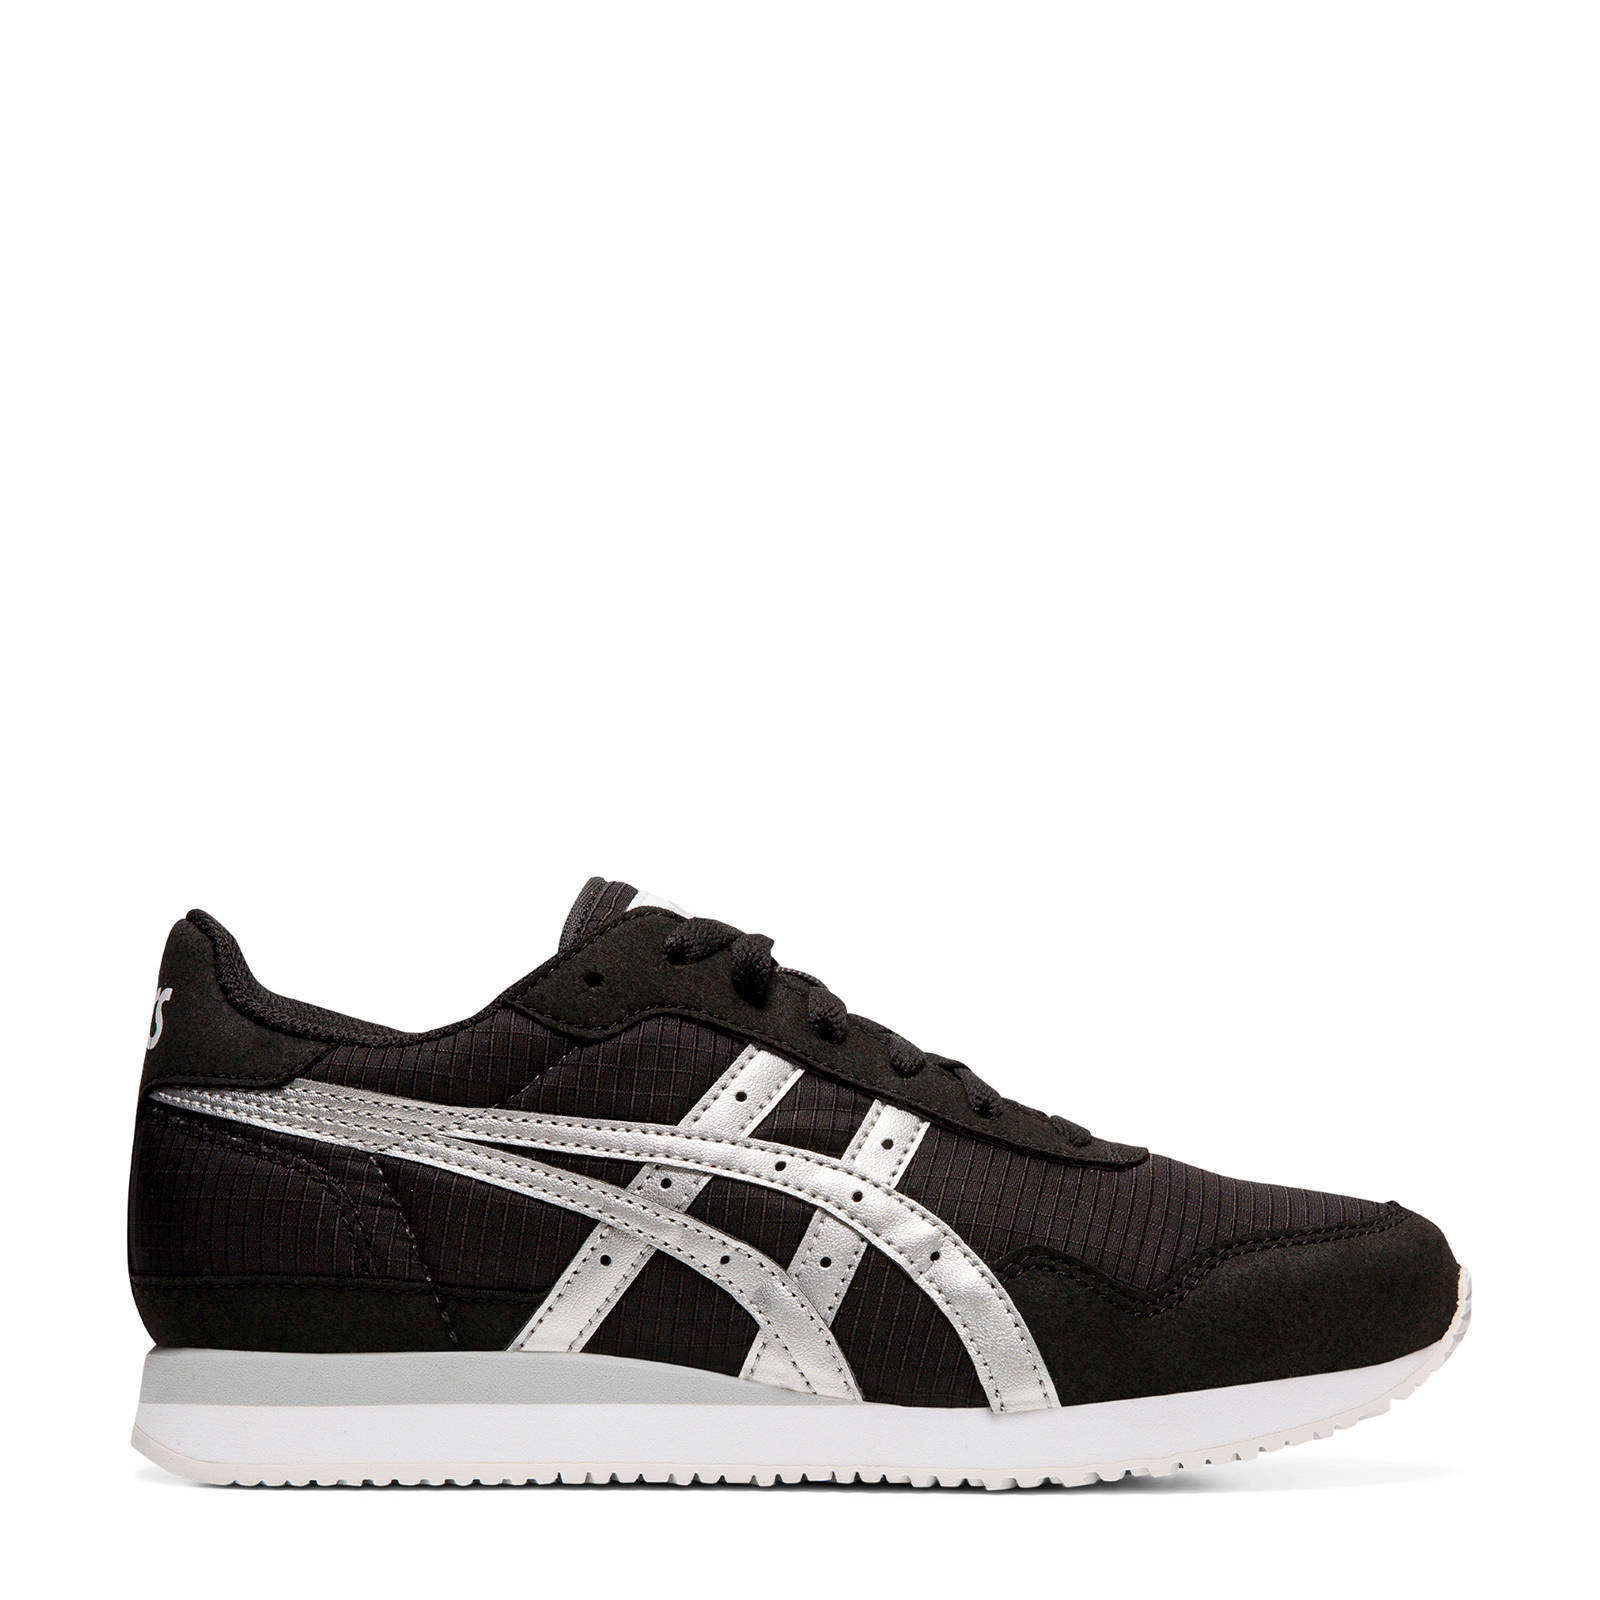 asics sale dames sneakers